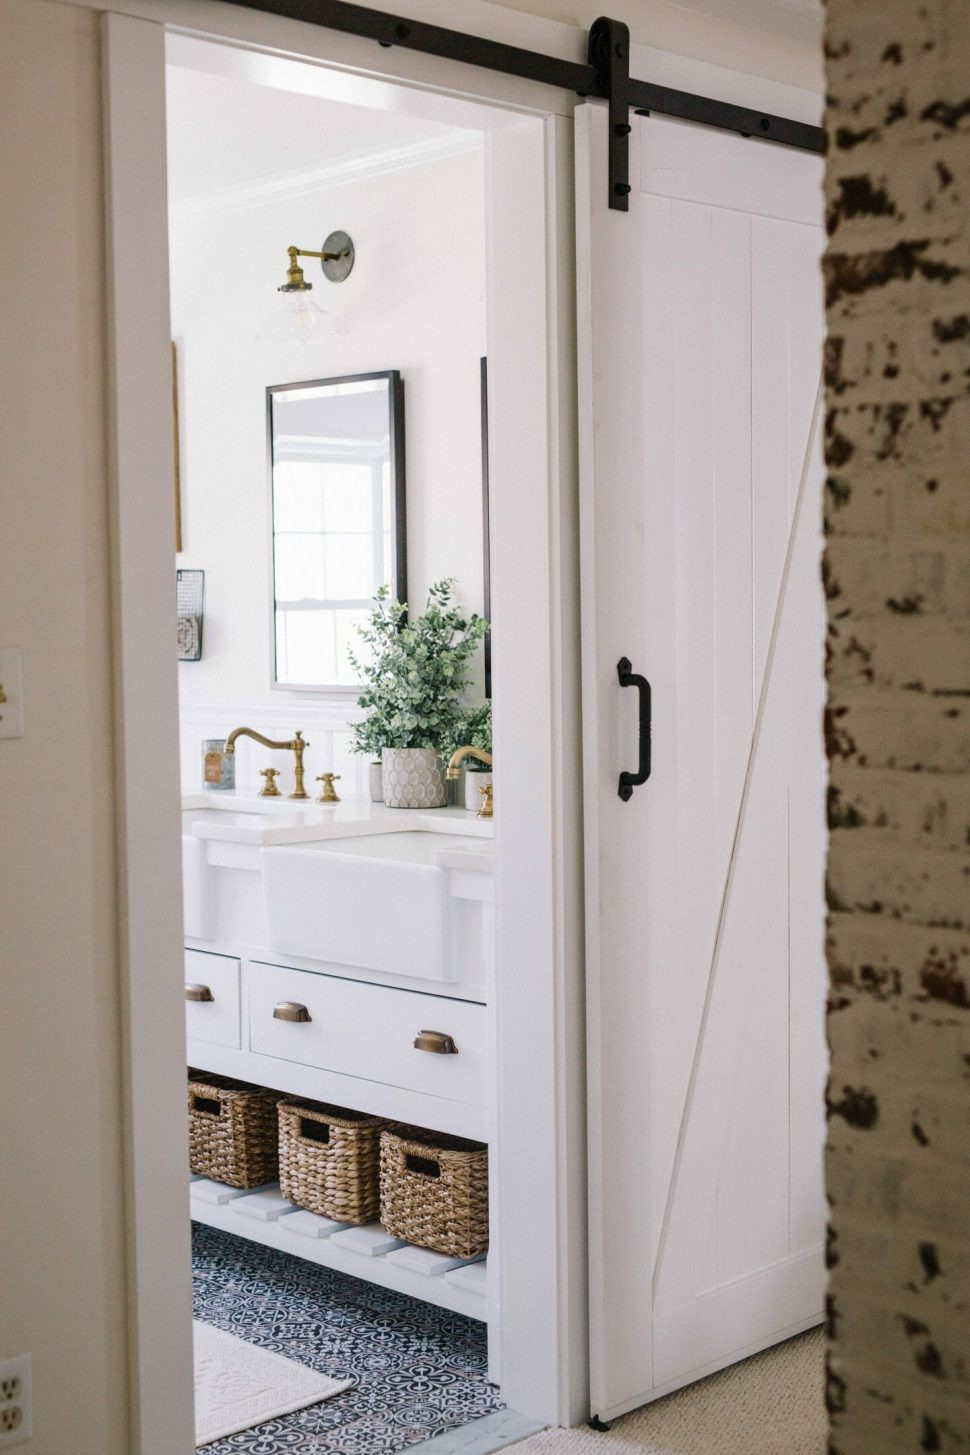 bathroom barn door fascinating lowes vanity mirror sliding cabinet hardware for diy farmhouse makeover – lynzy 970x1455